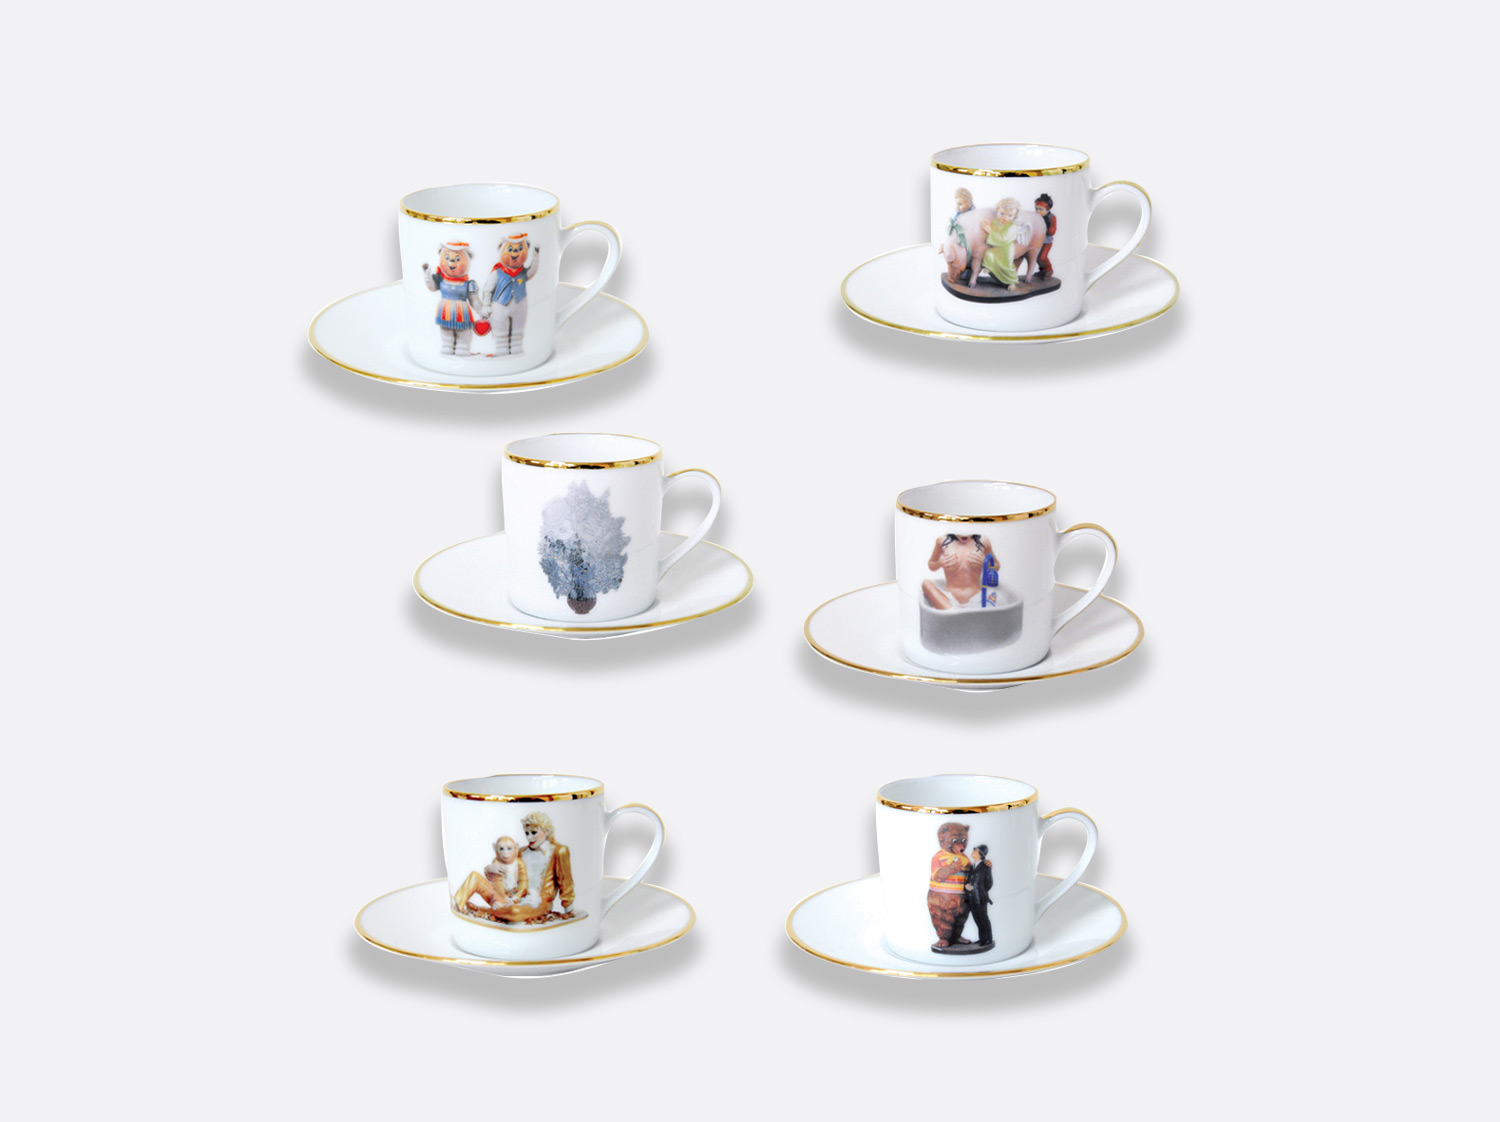 Coffret de 6 tasses et soucoupes à café assorties en porcelaine de la collection Banality series Bernardaud